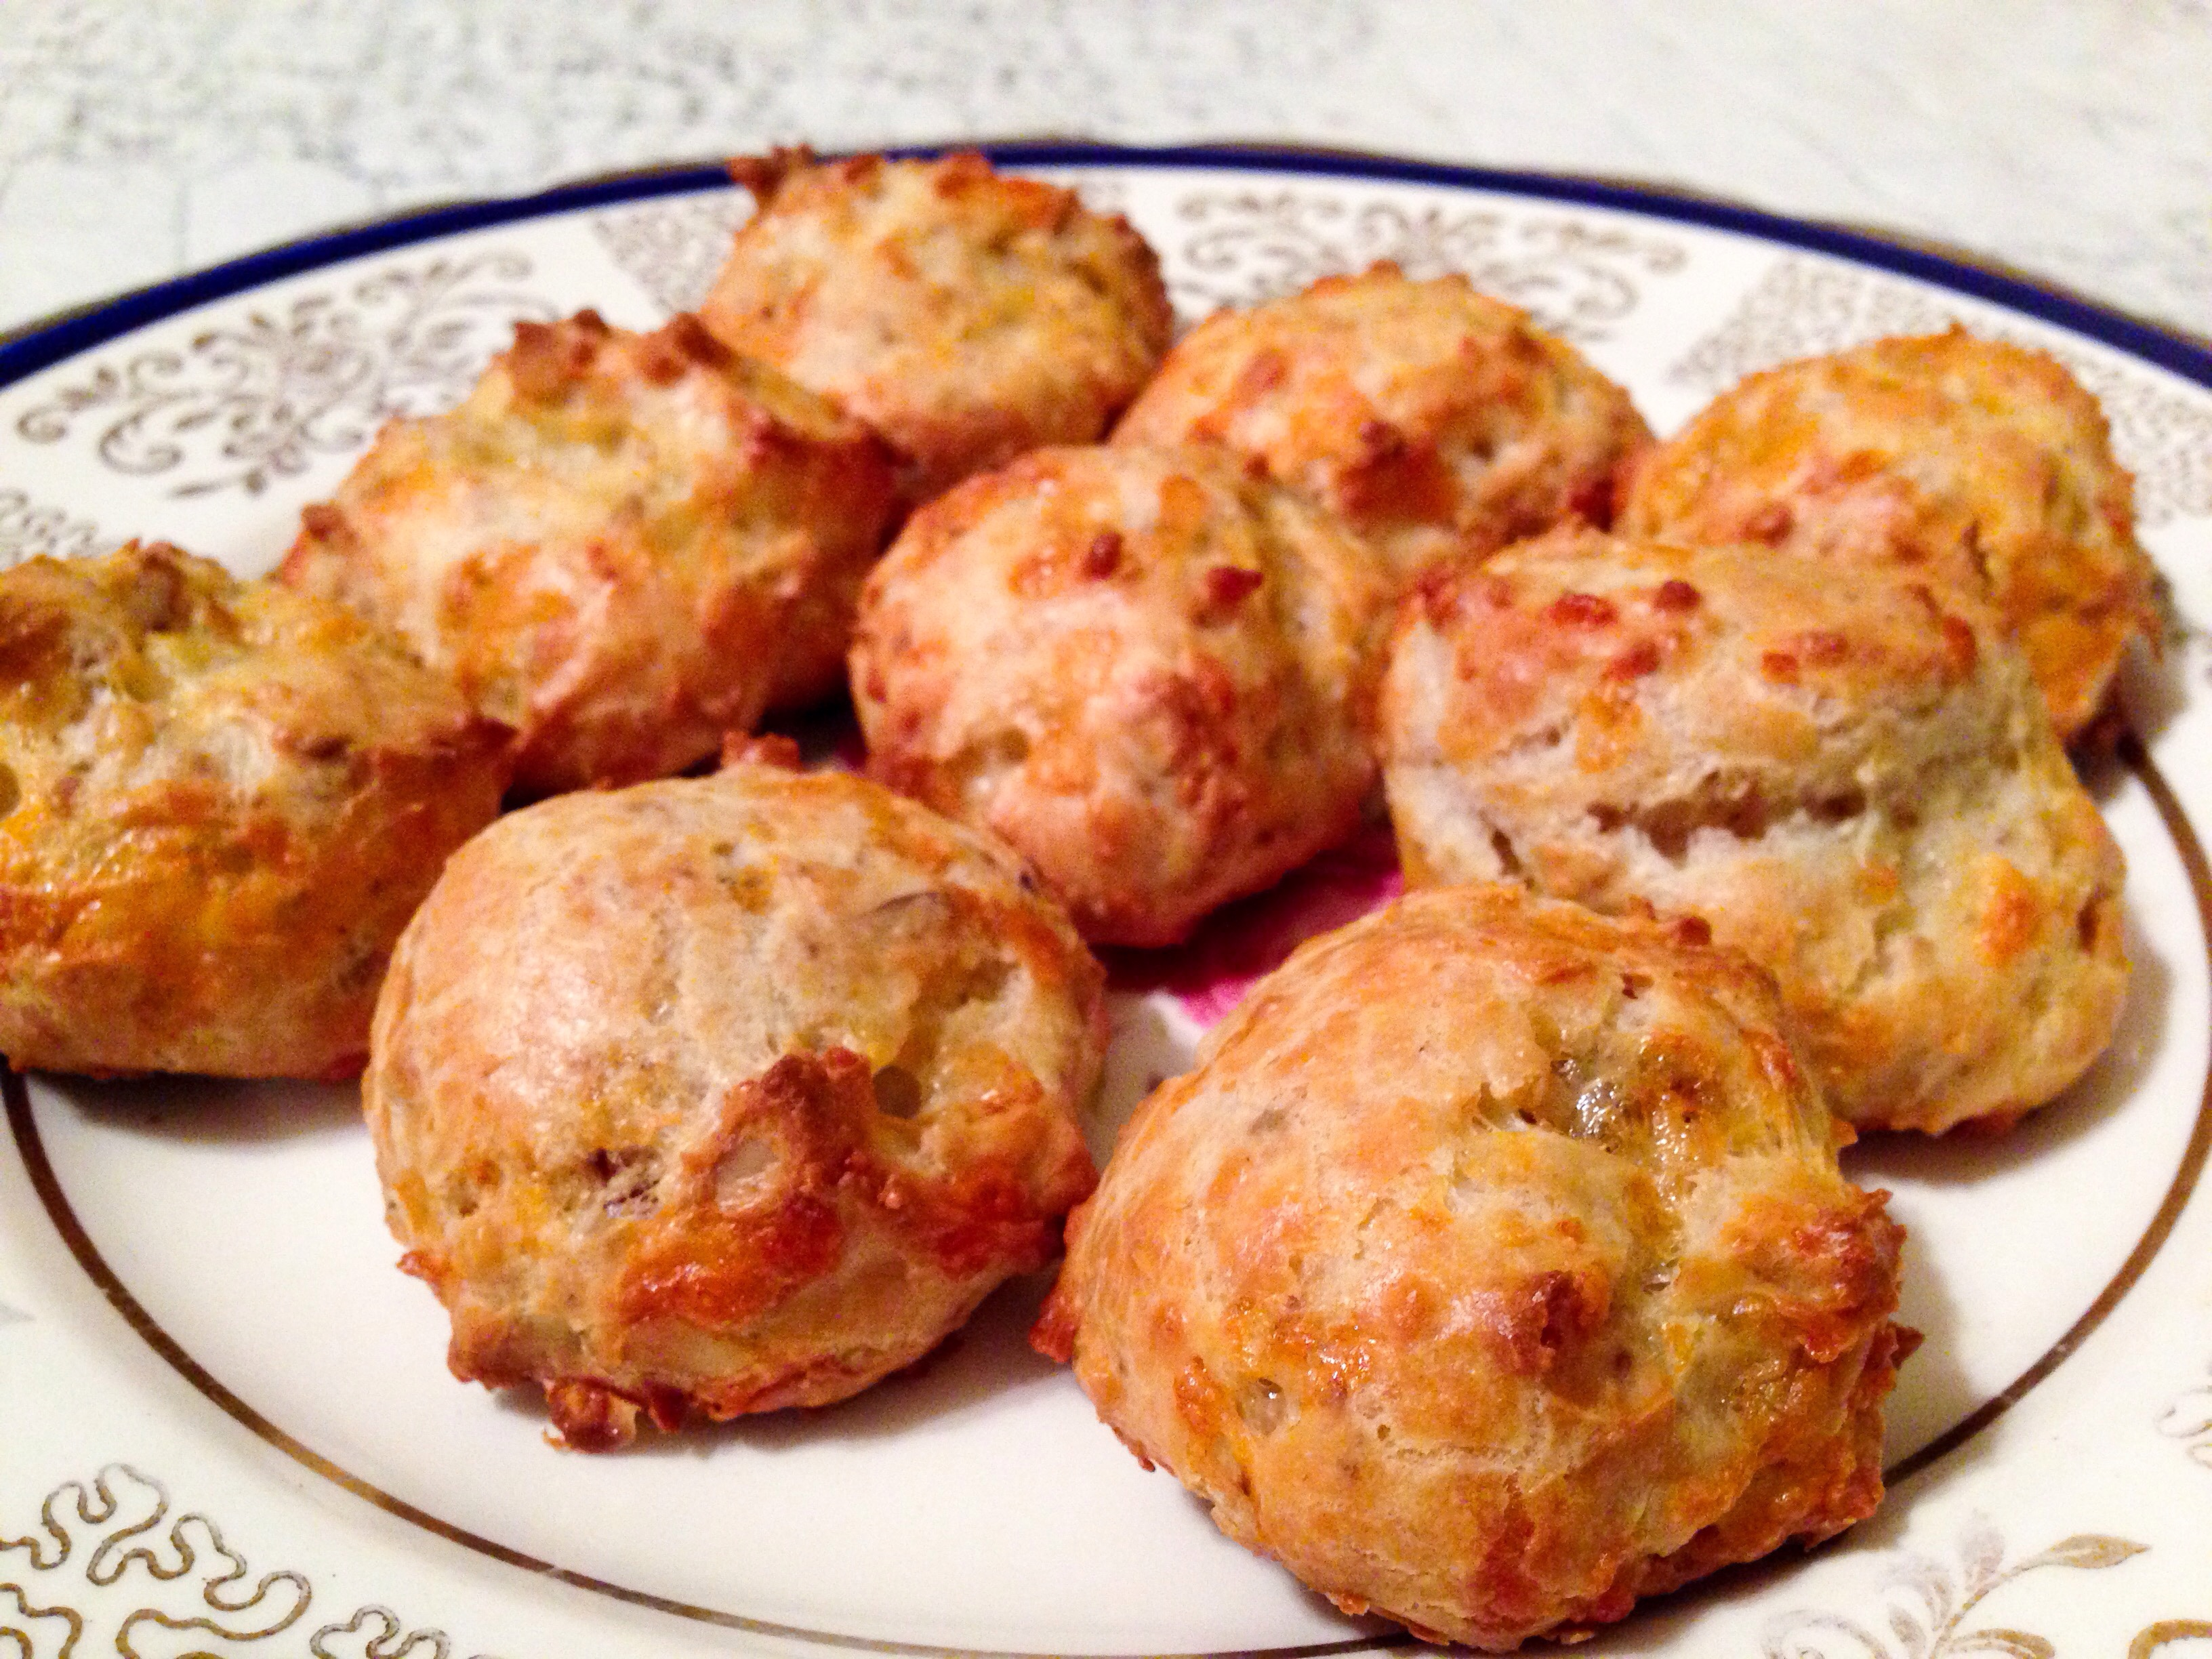 These gougères disappeared quickly!